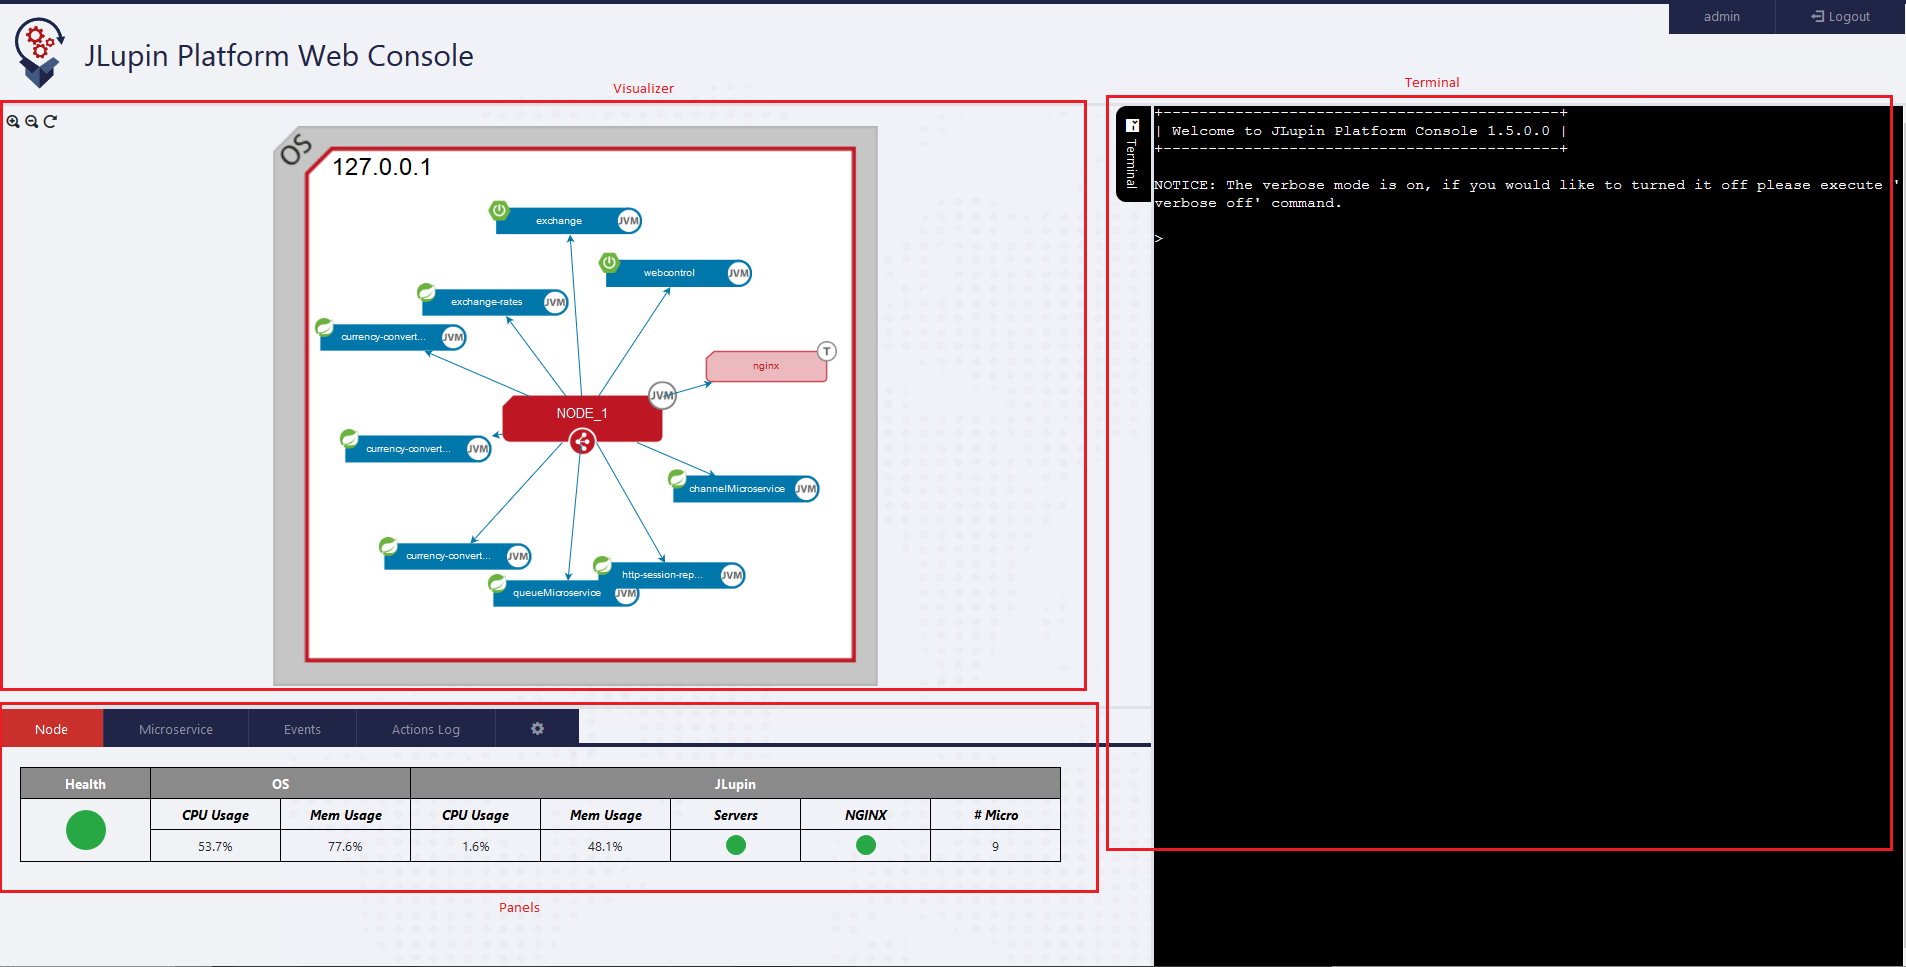 Figure 1. JLupin Platform Web Console screen architecture.